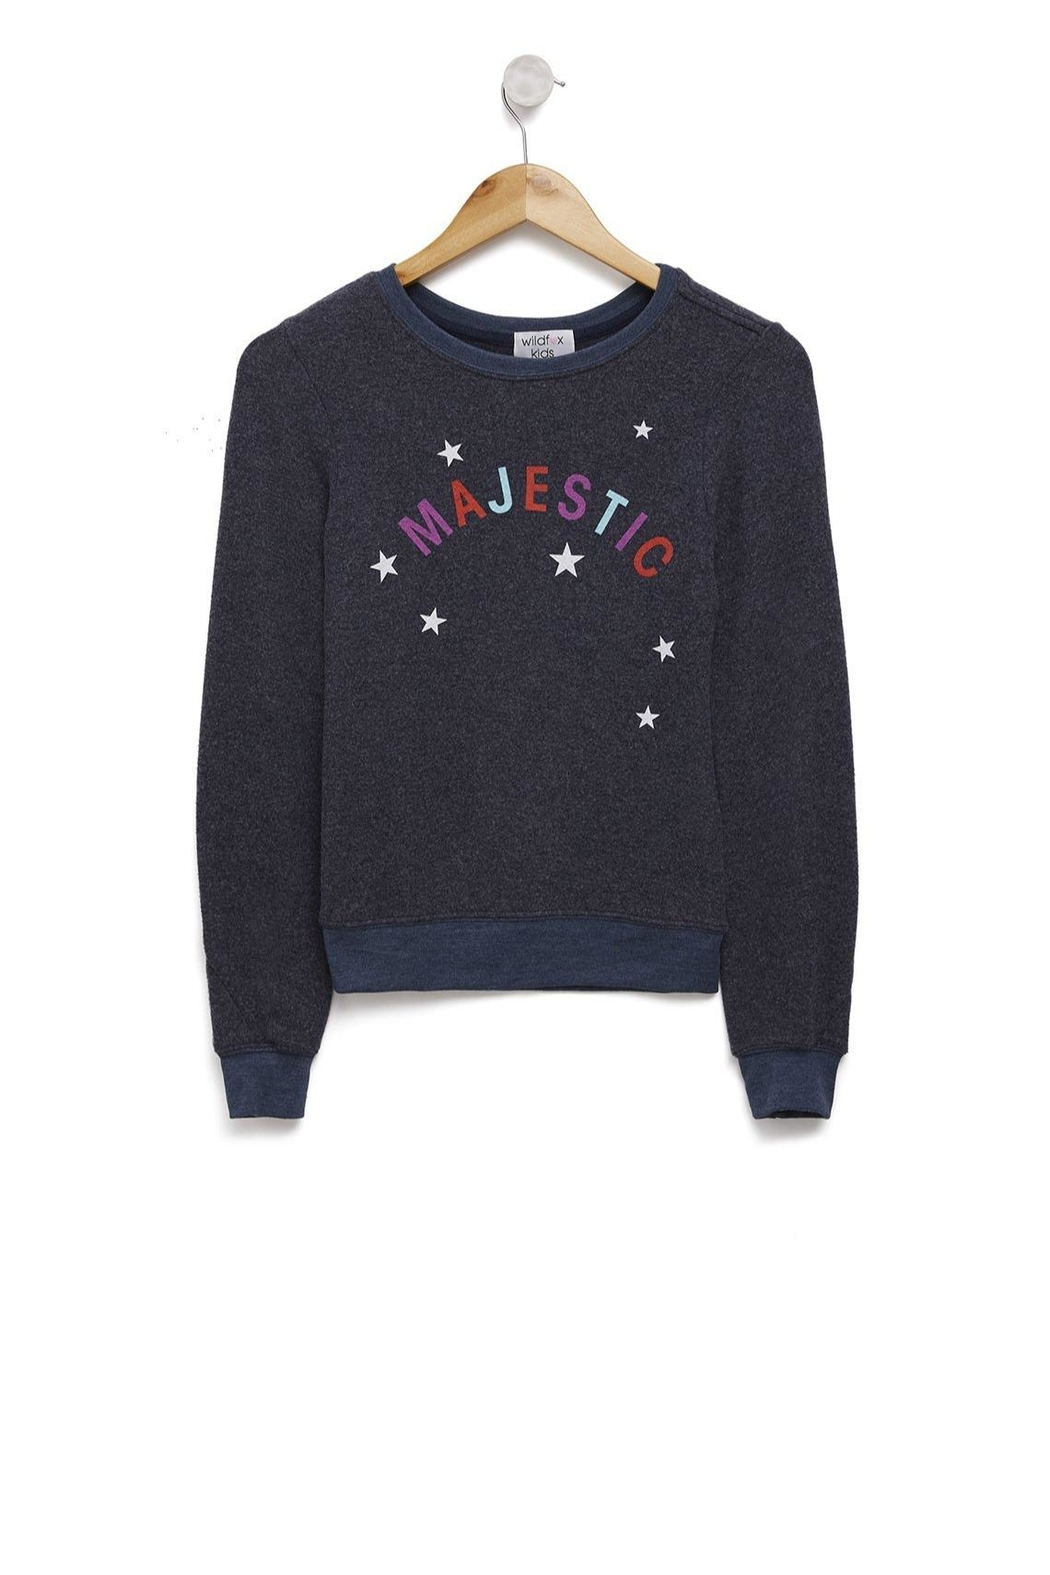 Wildfox Kids Majestic Baggy-Beach Jumper - Main Image